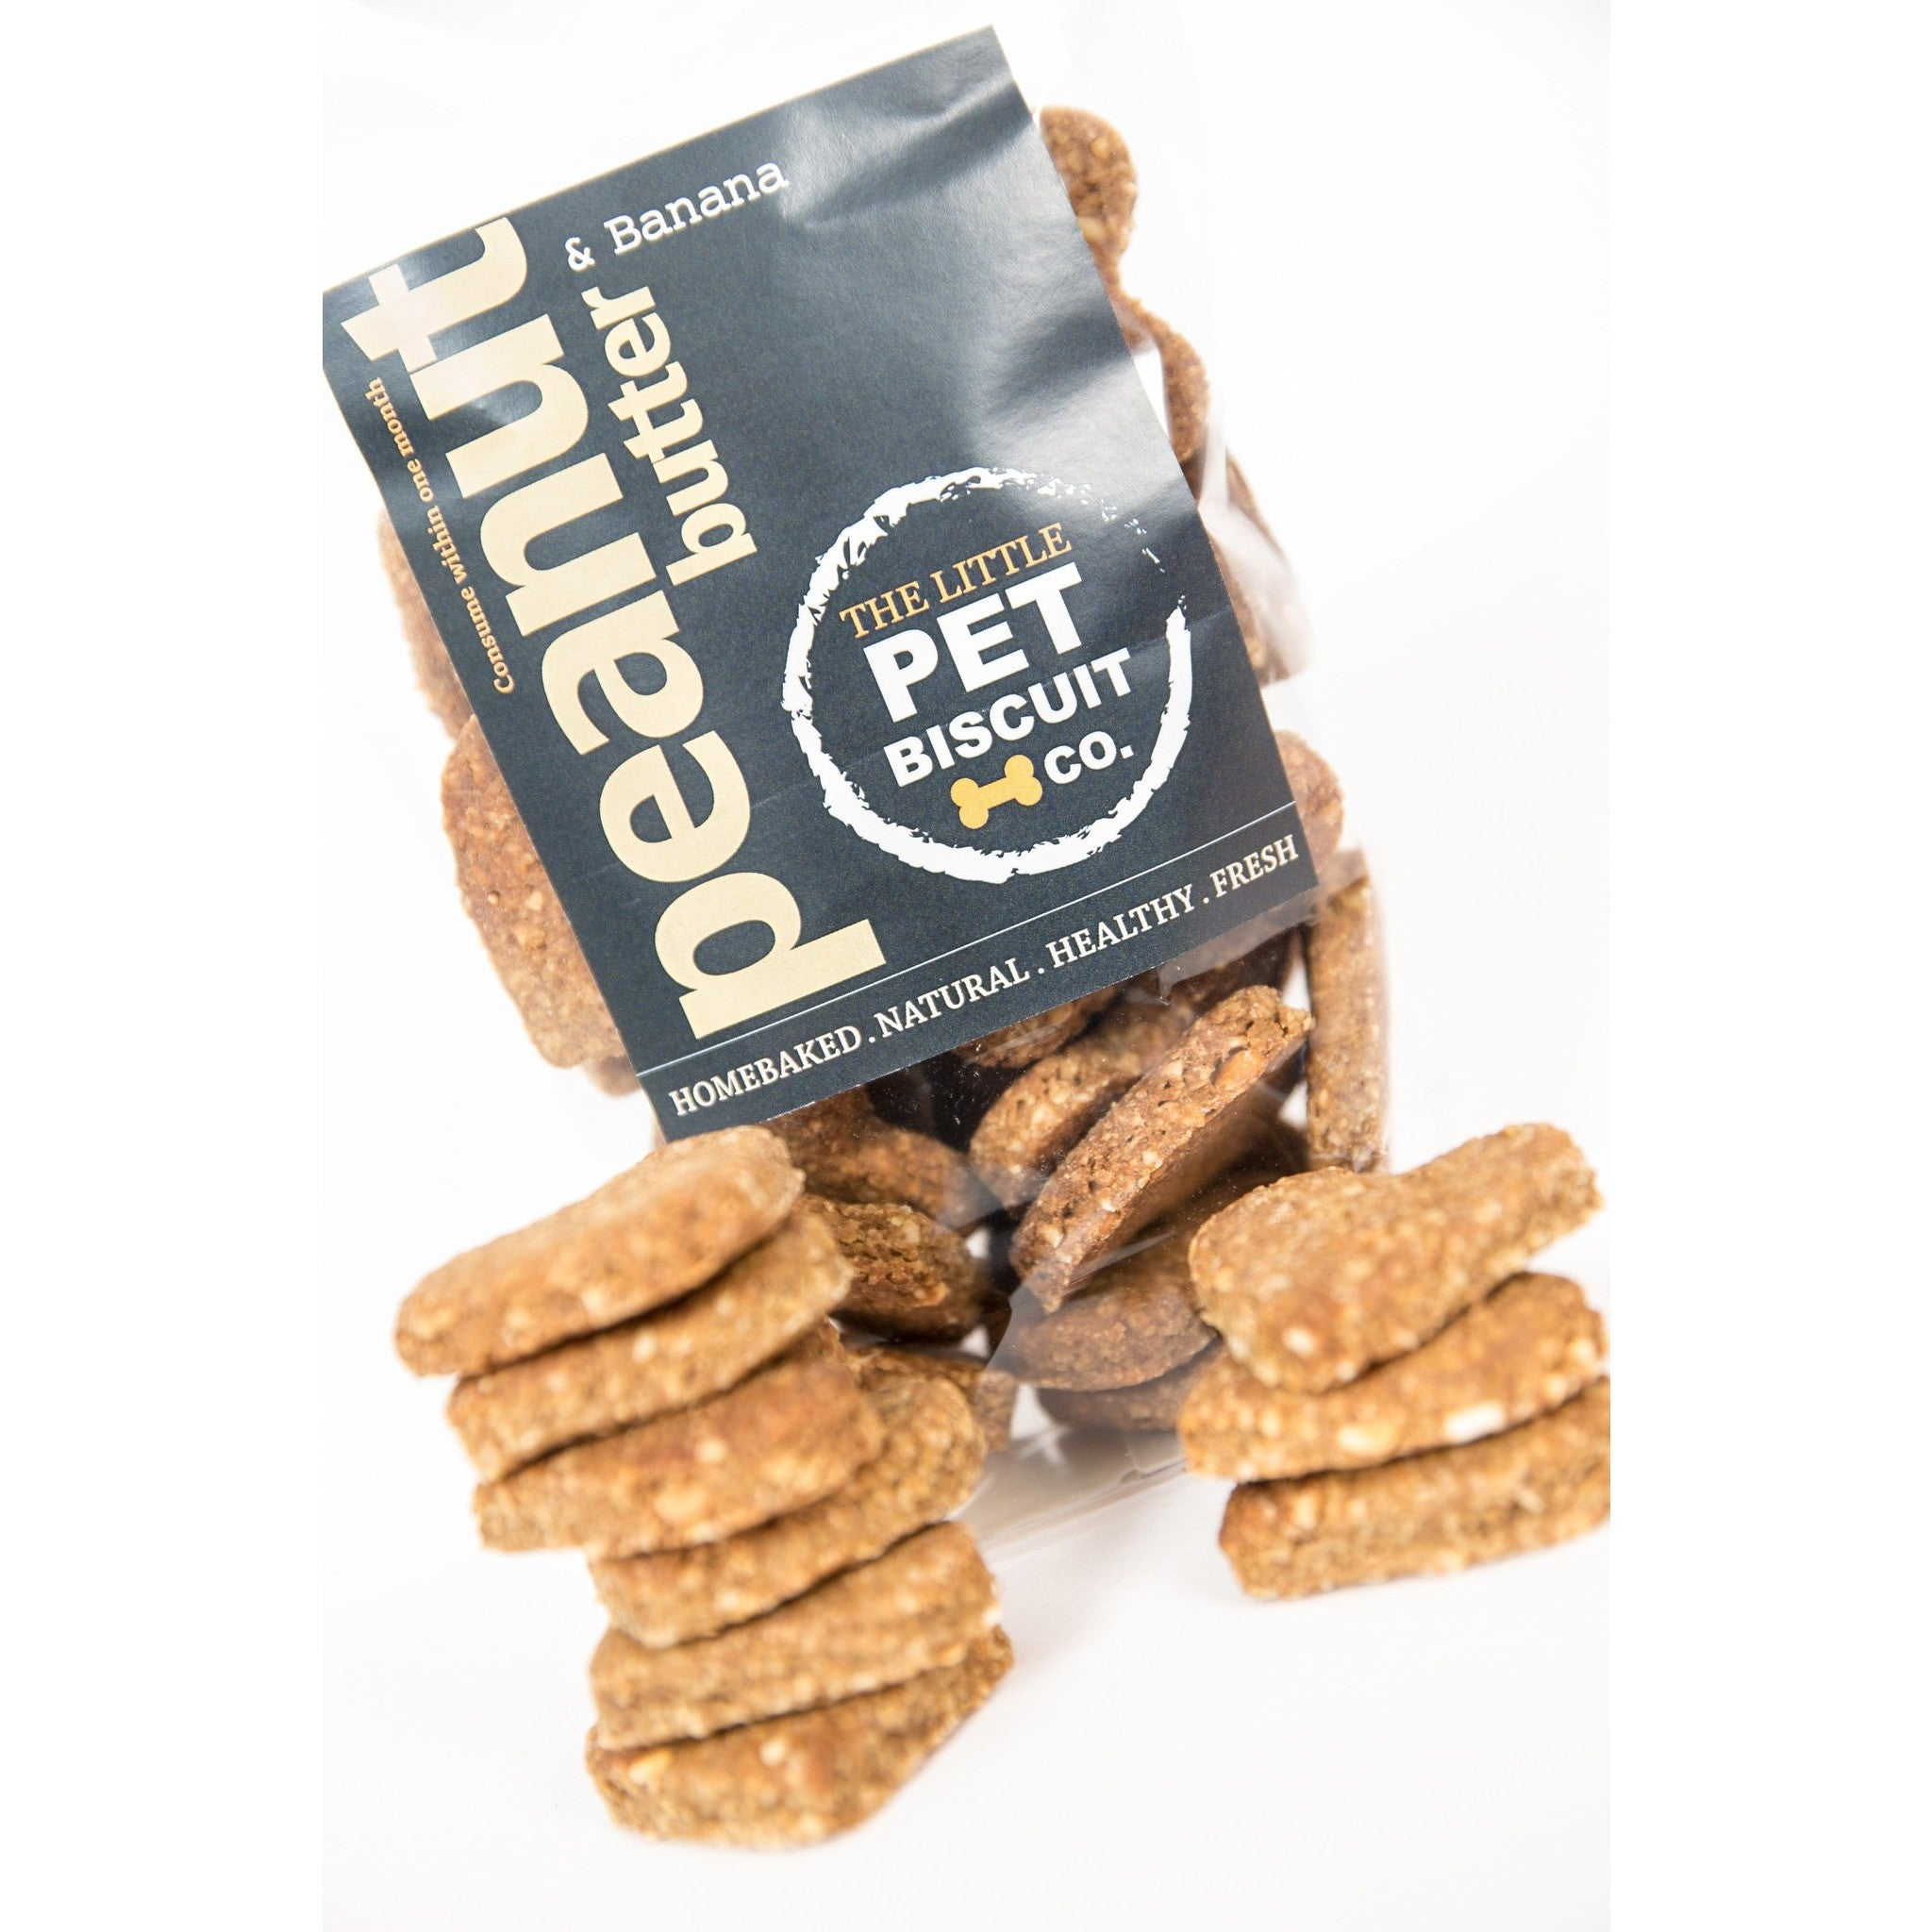 Natural Dog Food Company Stockists